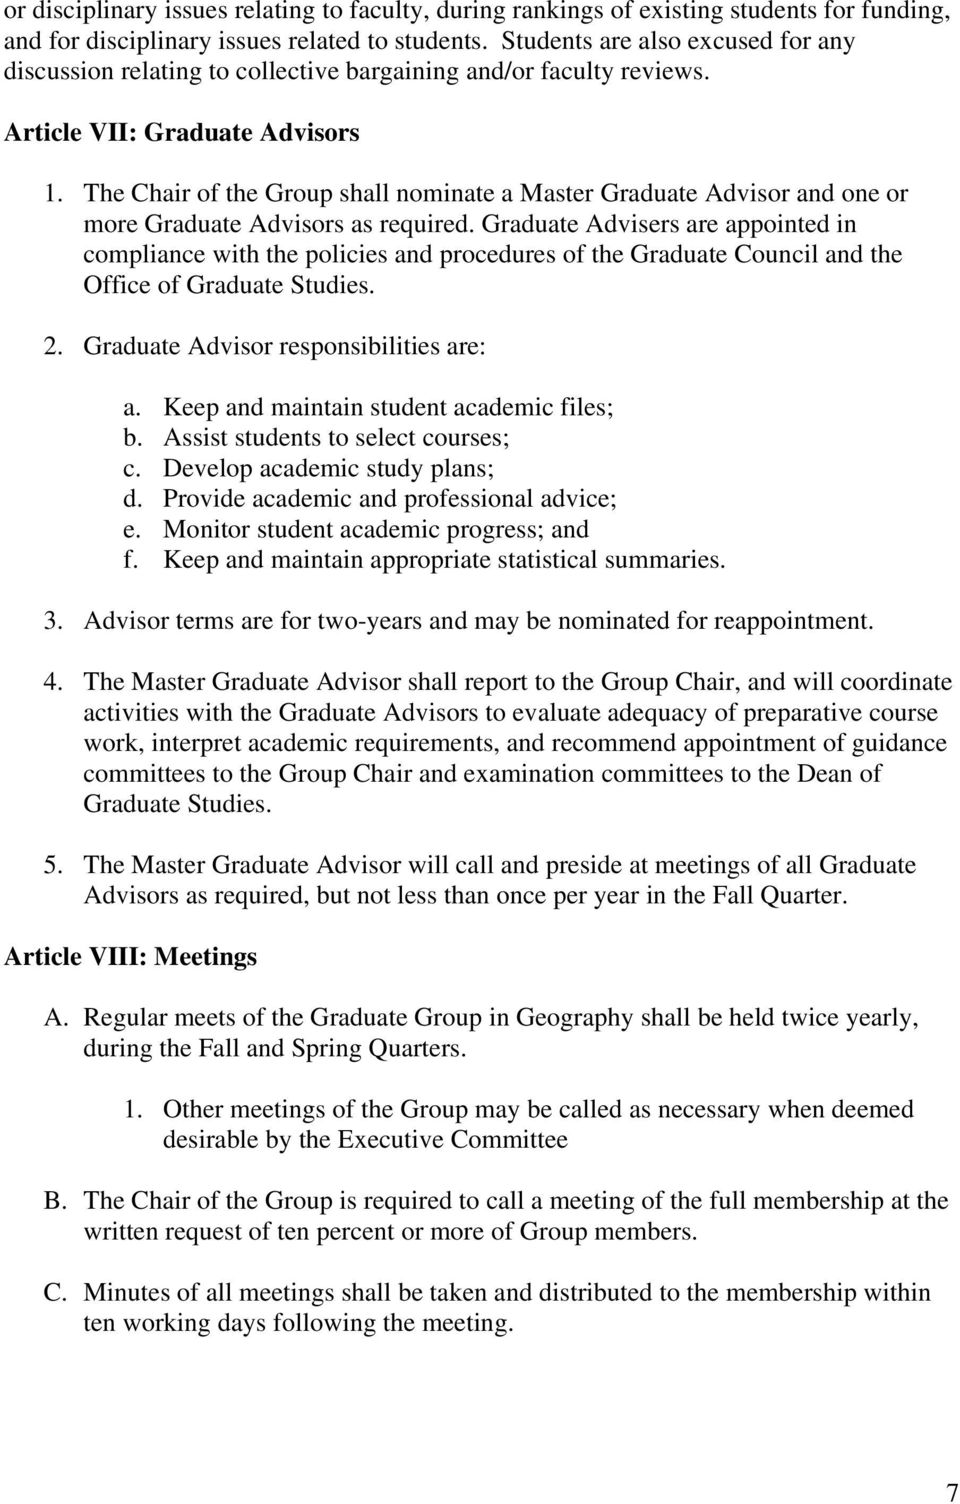 The Chair of the Group shall nominate a Master Graduate Advisor and one or more Graduate Advisors as required.